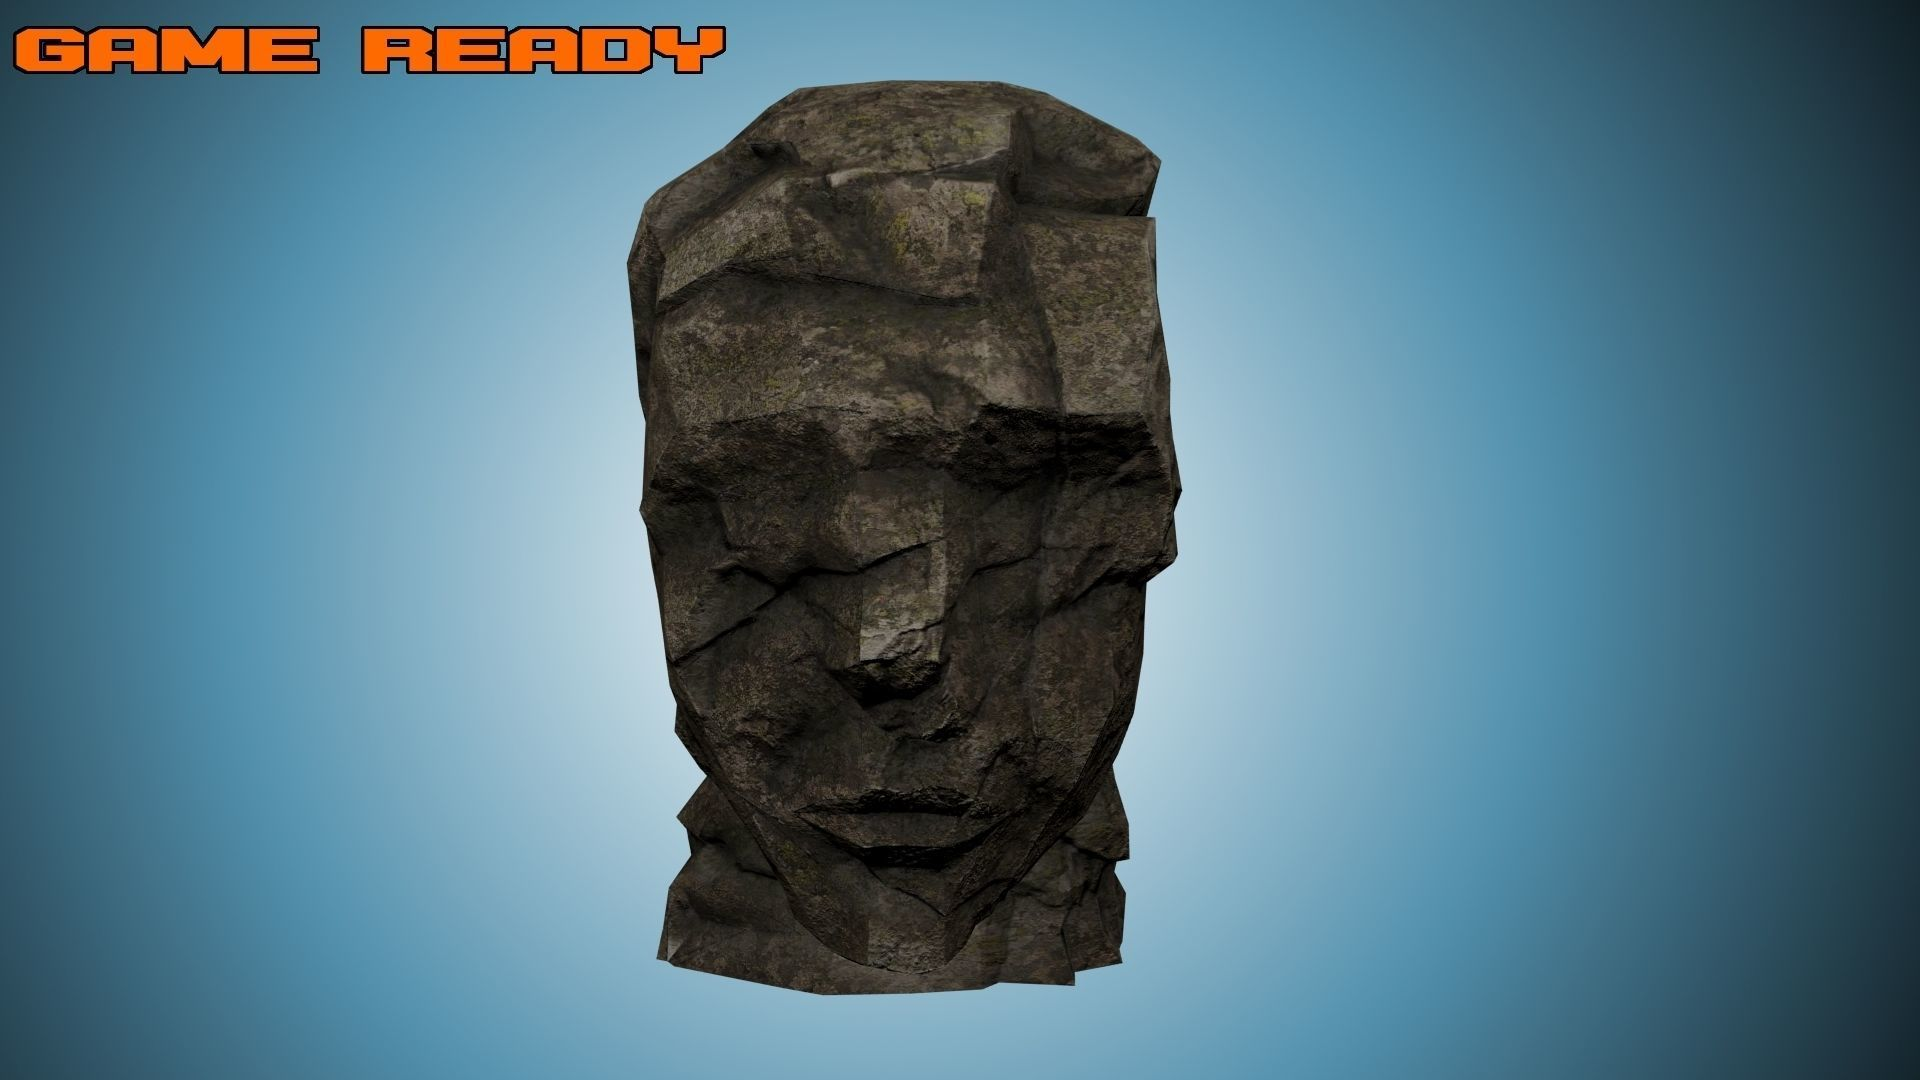 Game Ready Rock Formation - Ancient Stone Head